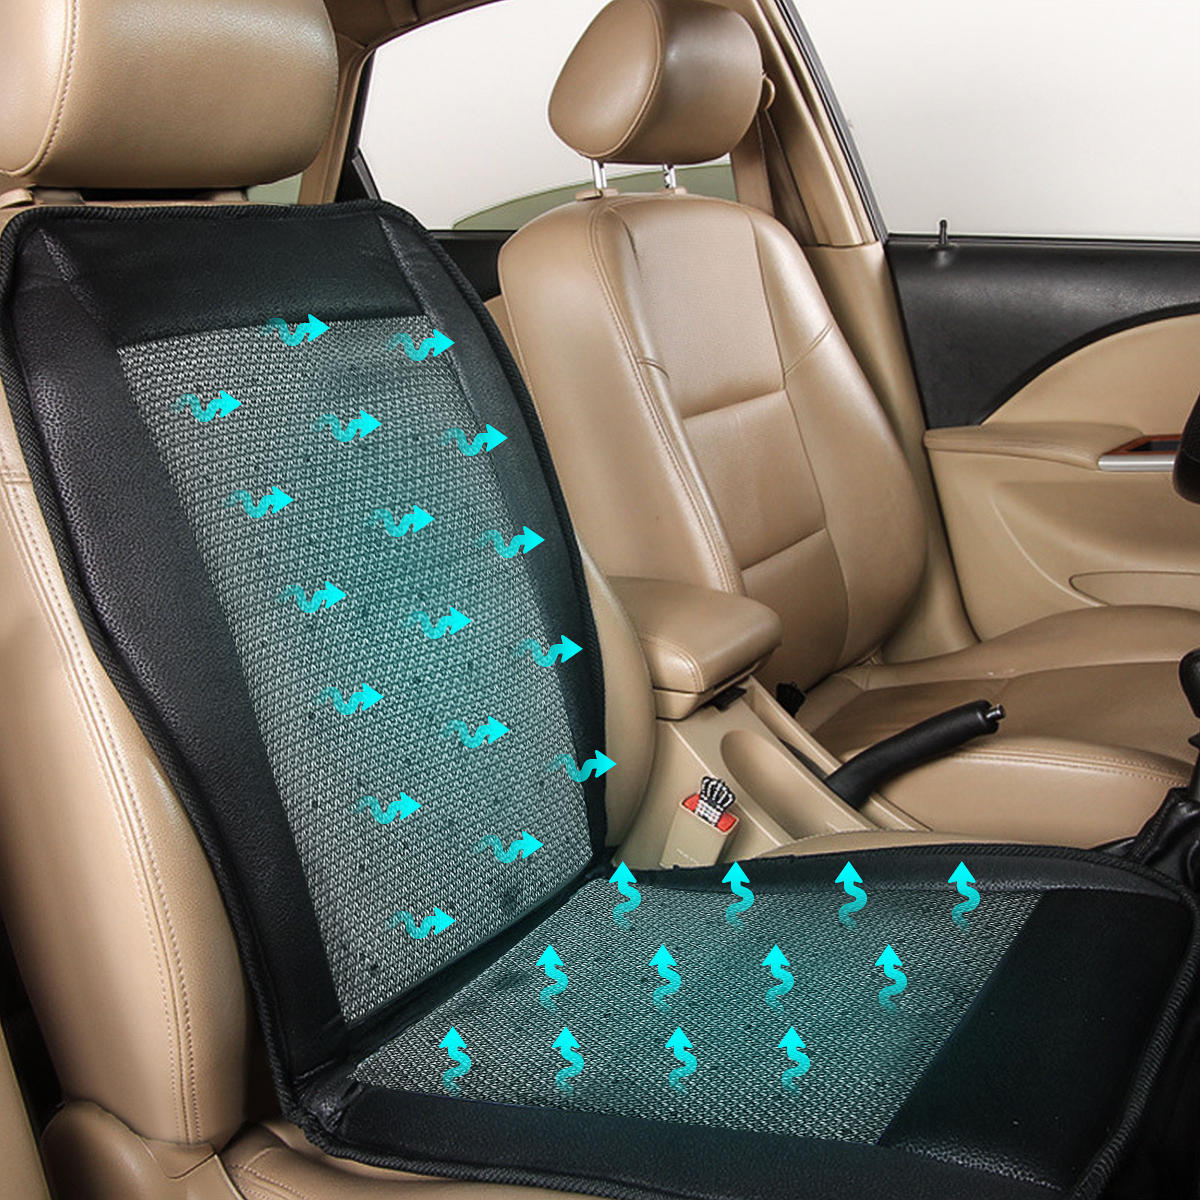 12v Cooling Car Seat Cushion Cover, Best Car Seat Cooling Pad